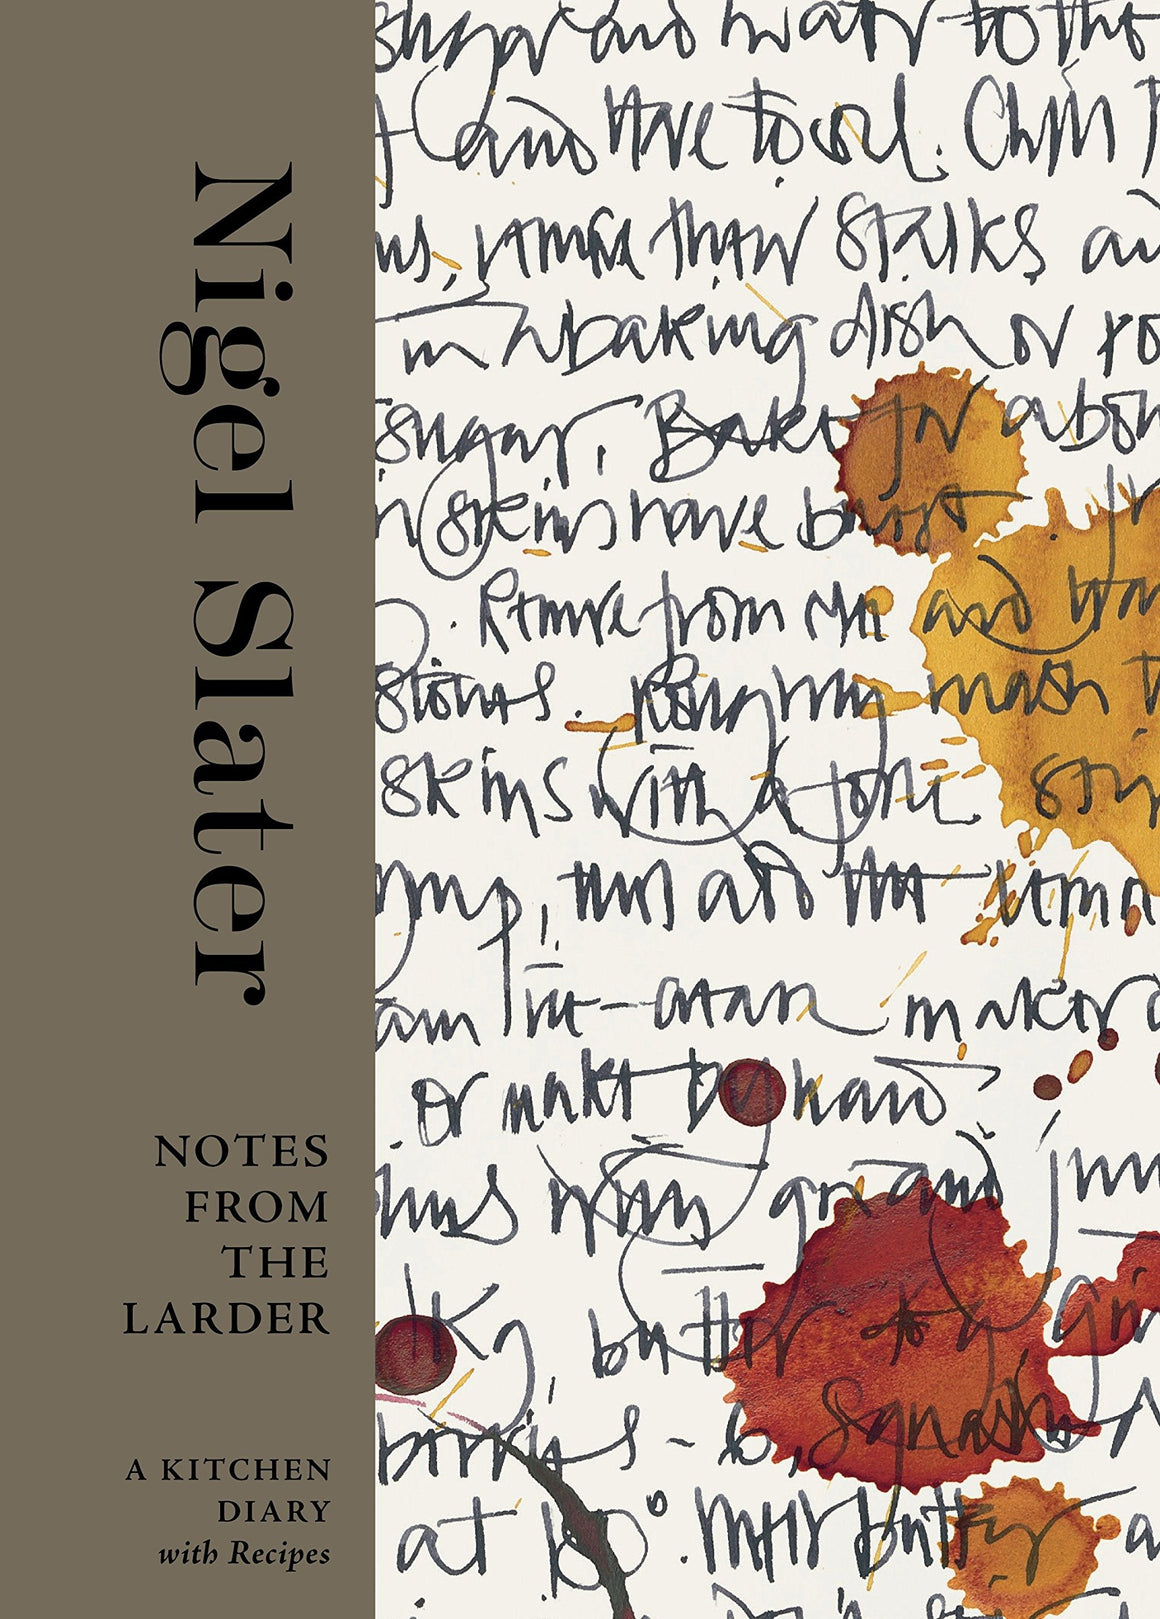 Nigel Slater. Notes from the Larder: A Kitchen Diary with Recipes